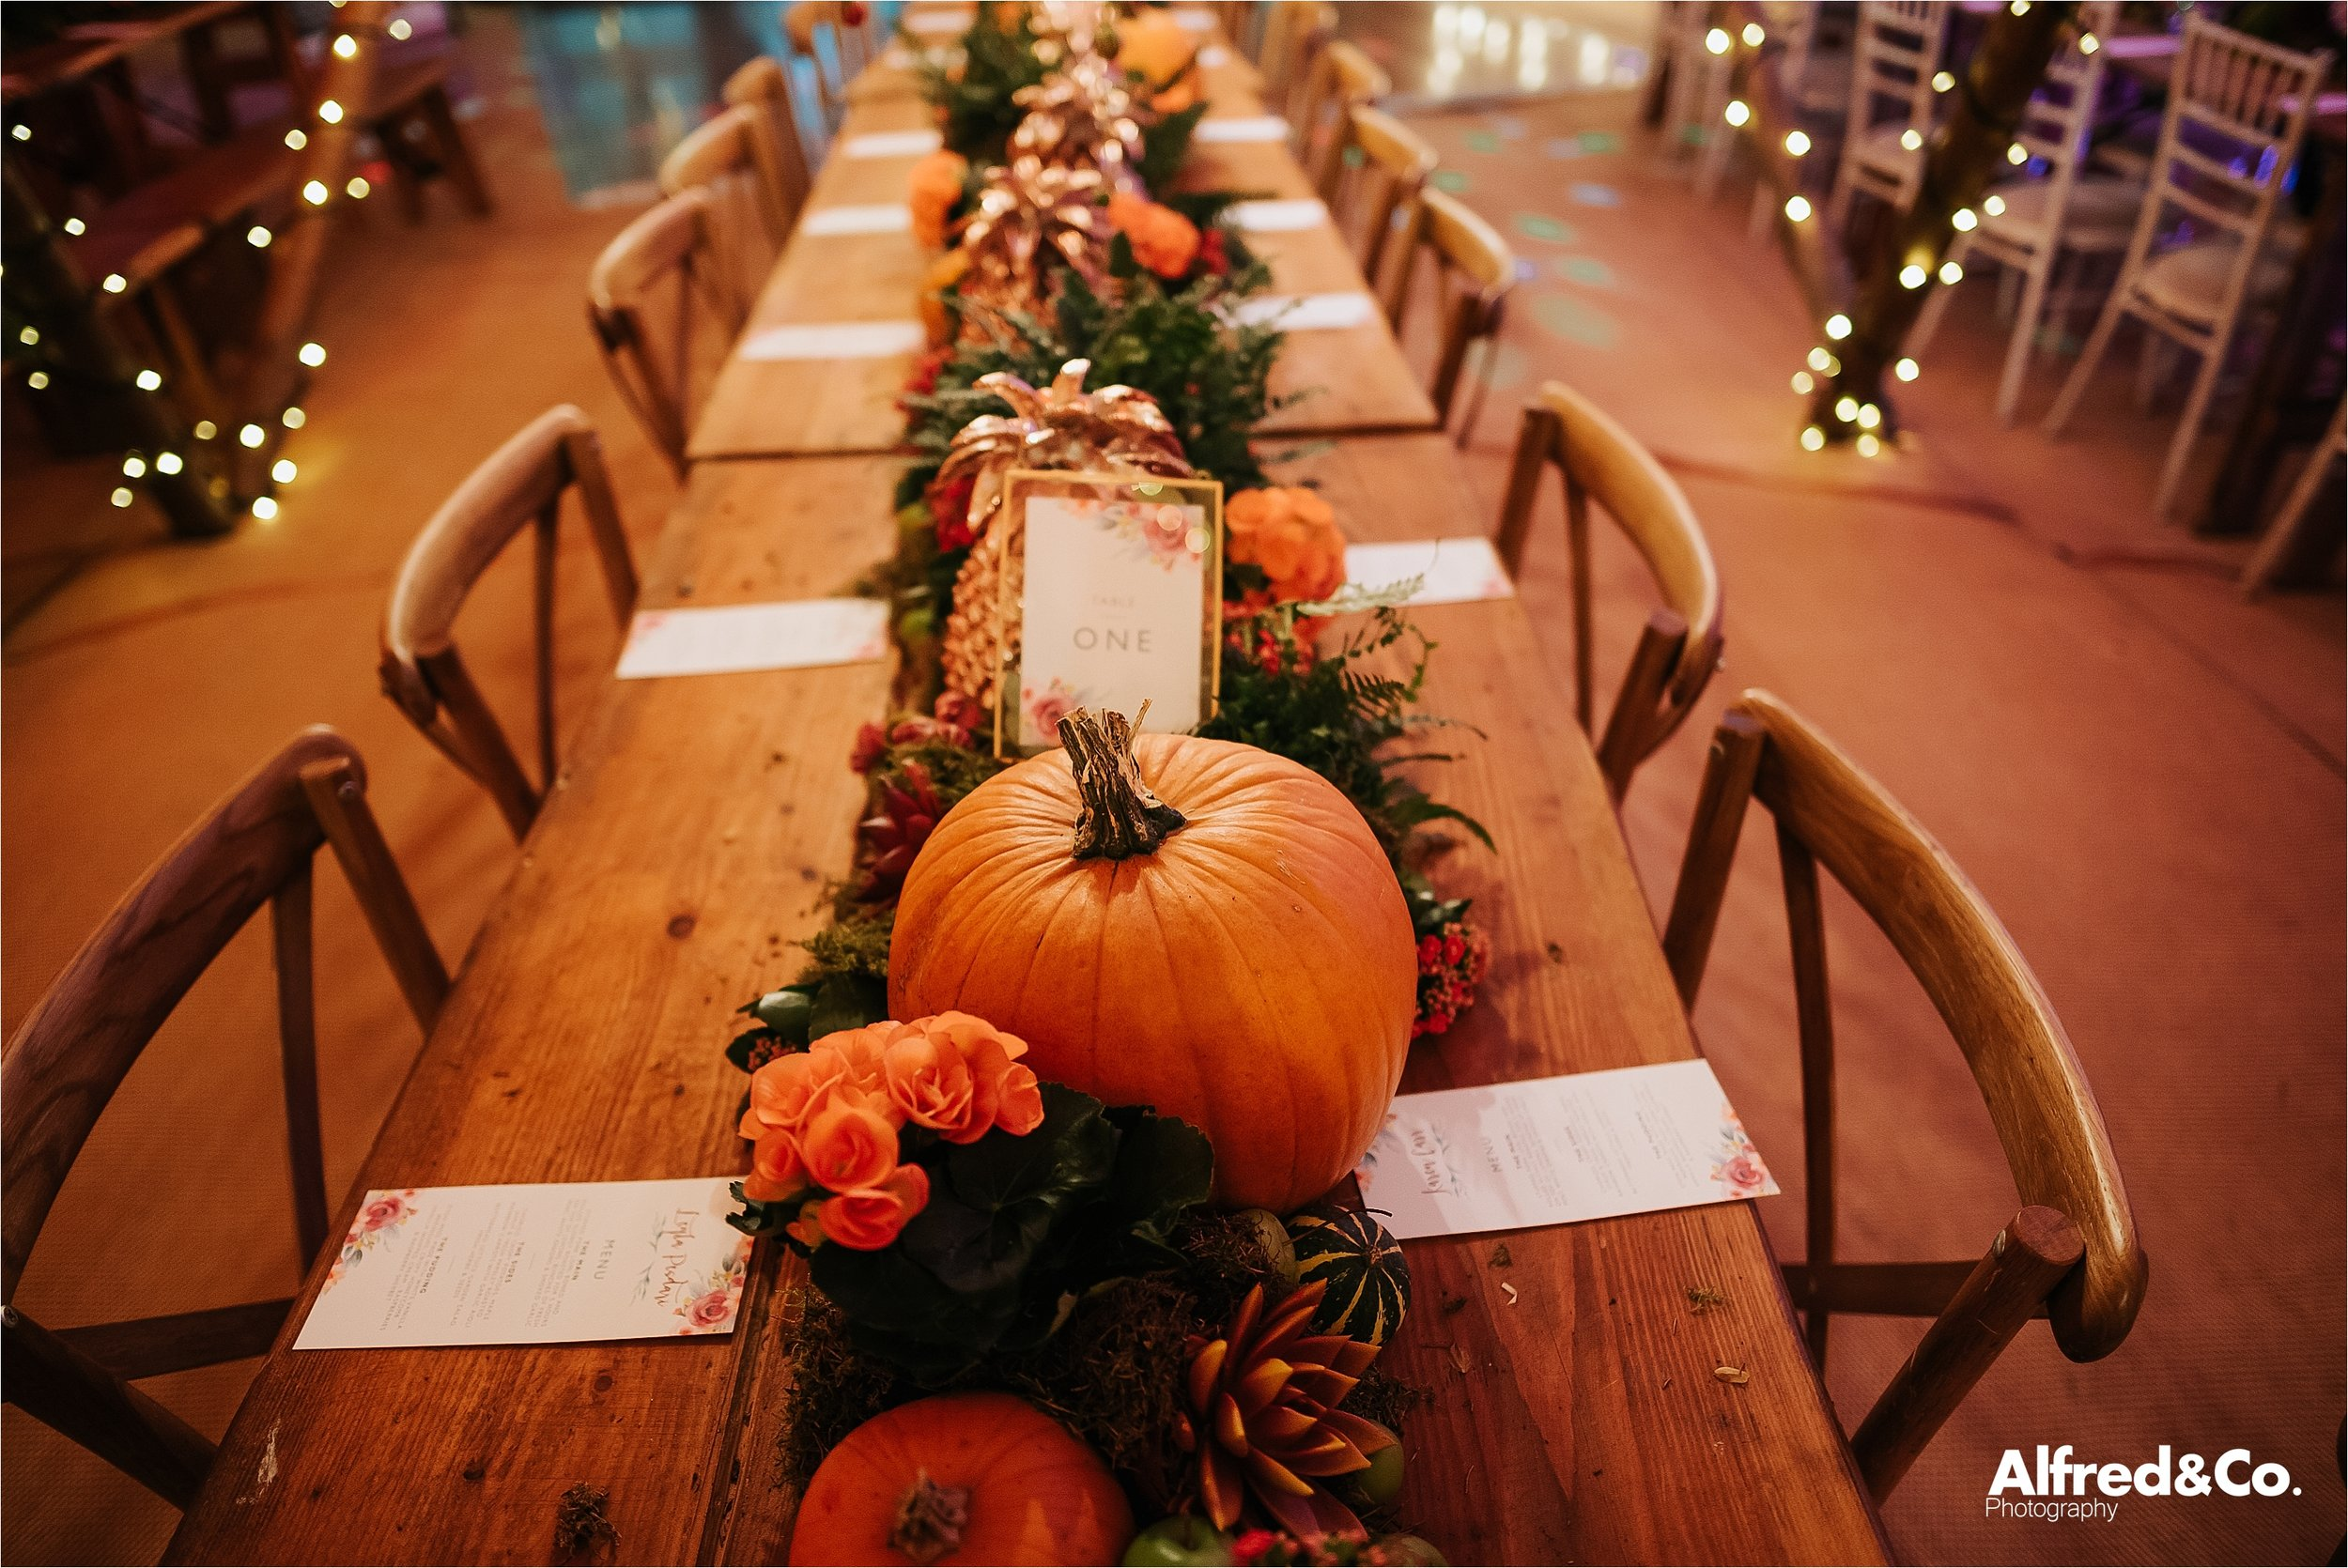 Autumn flower display for wedding